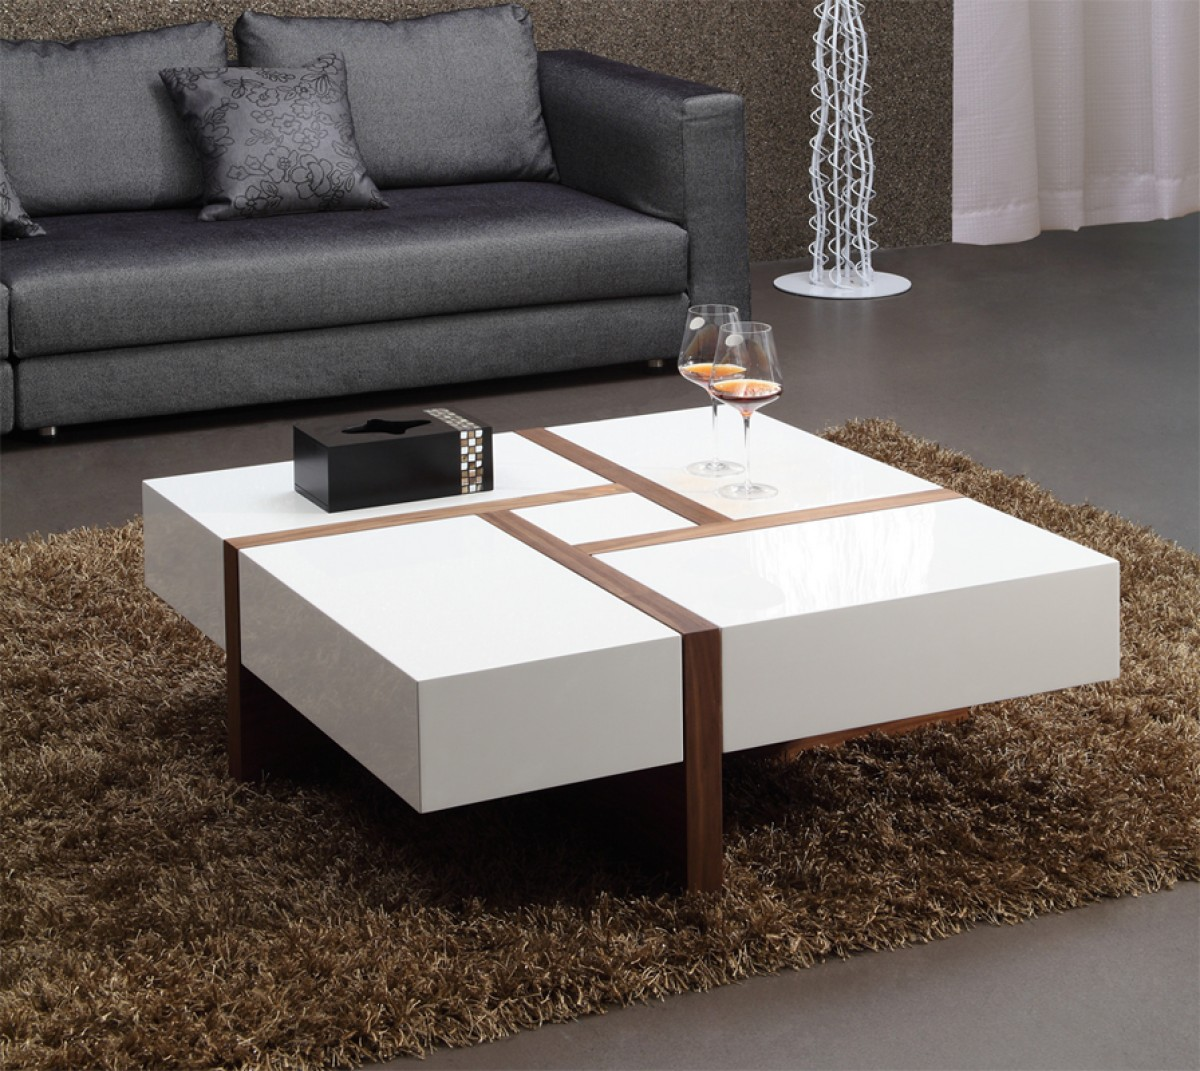 Modern Contemporary Square Coffee Tables Modrest Makai Modern White And Walnut Square Coffee Table